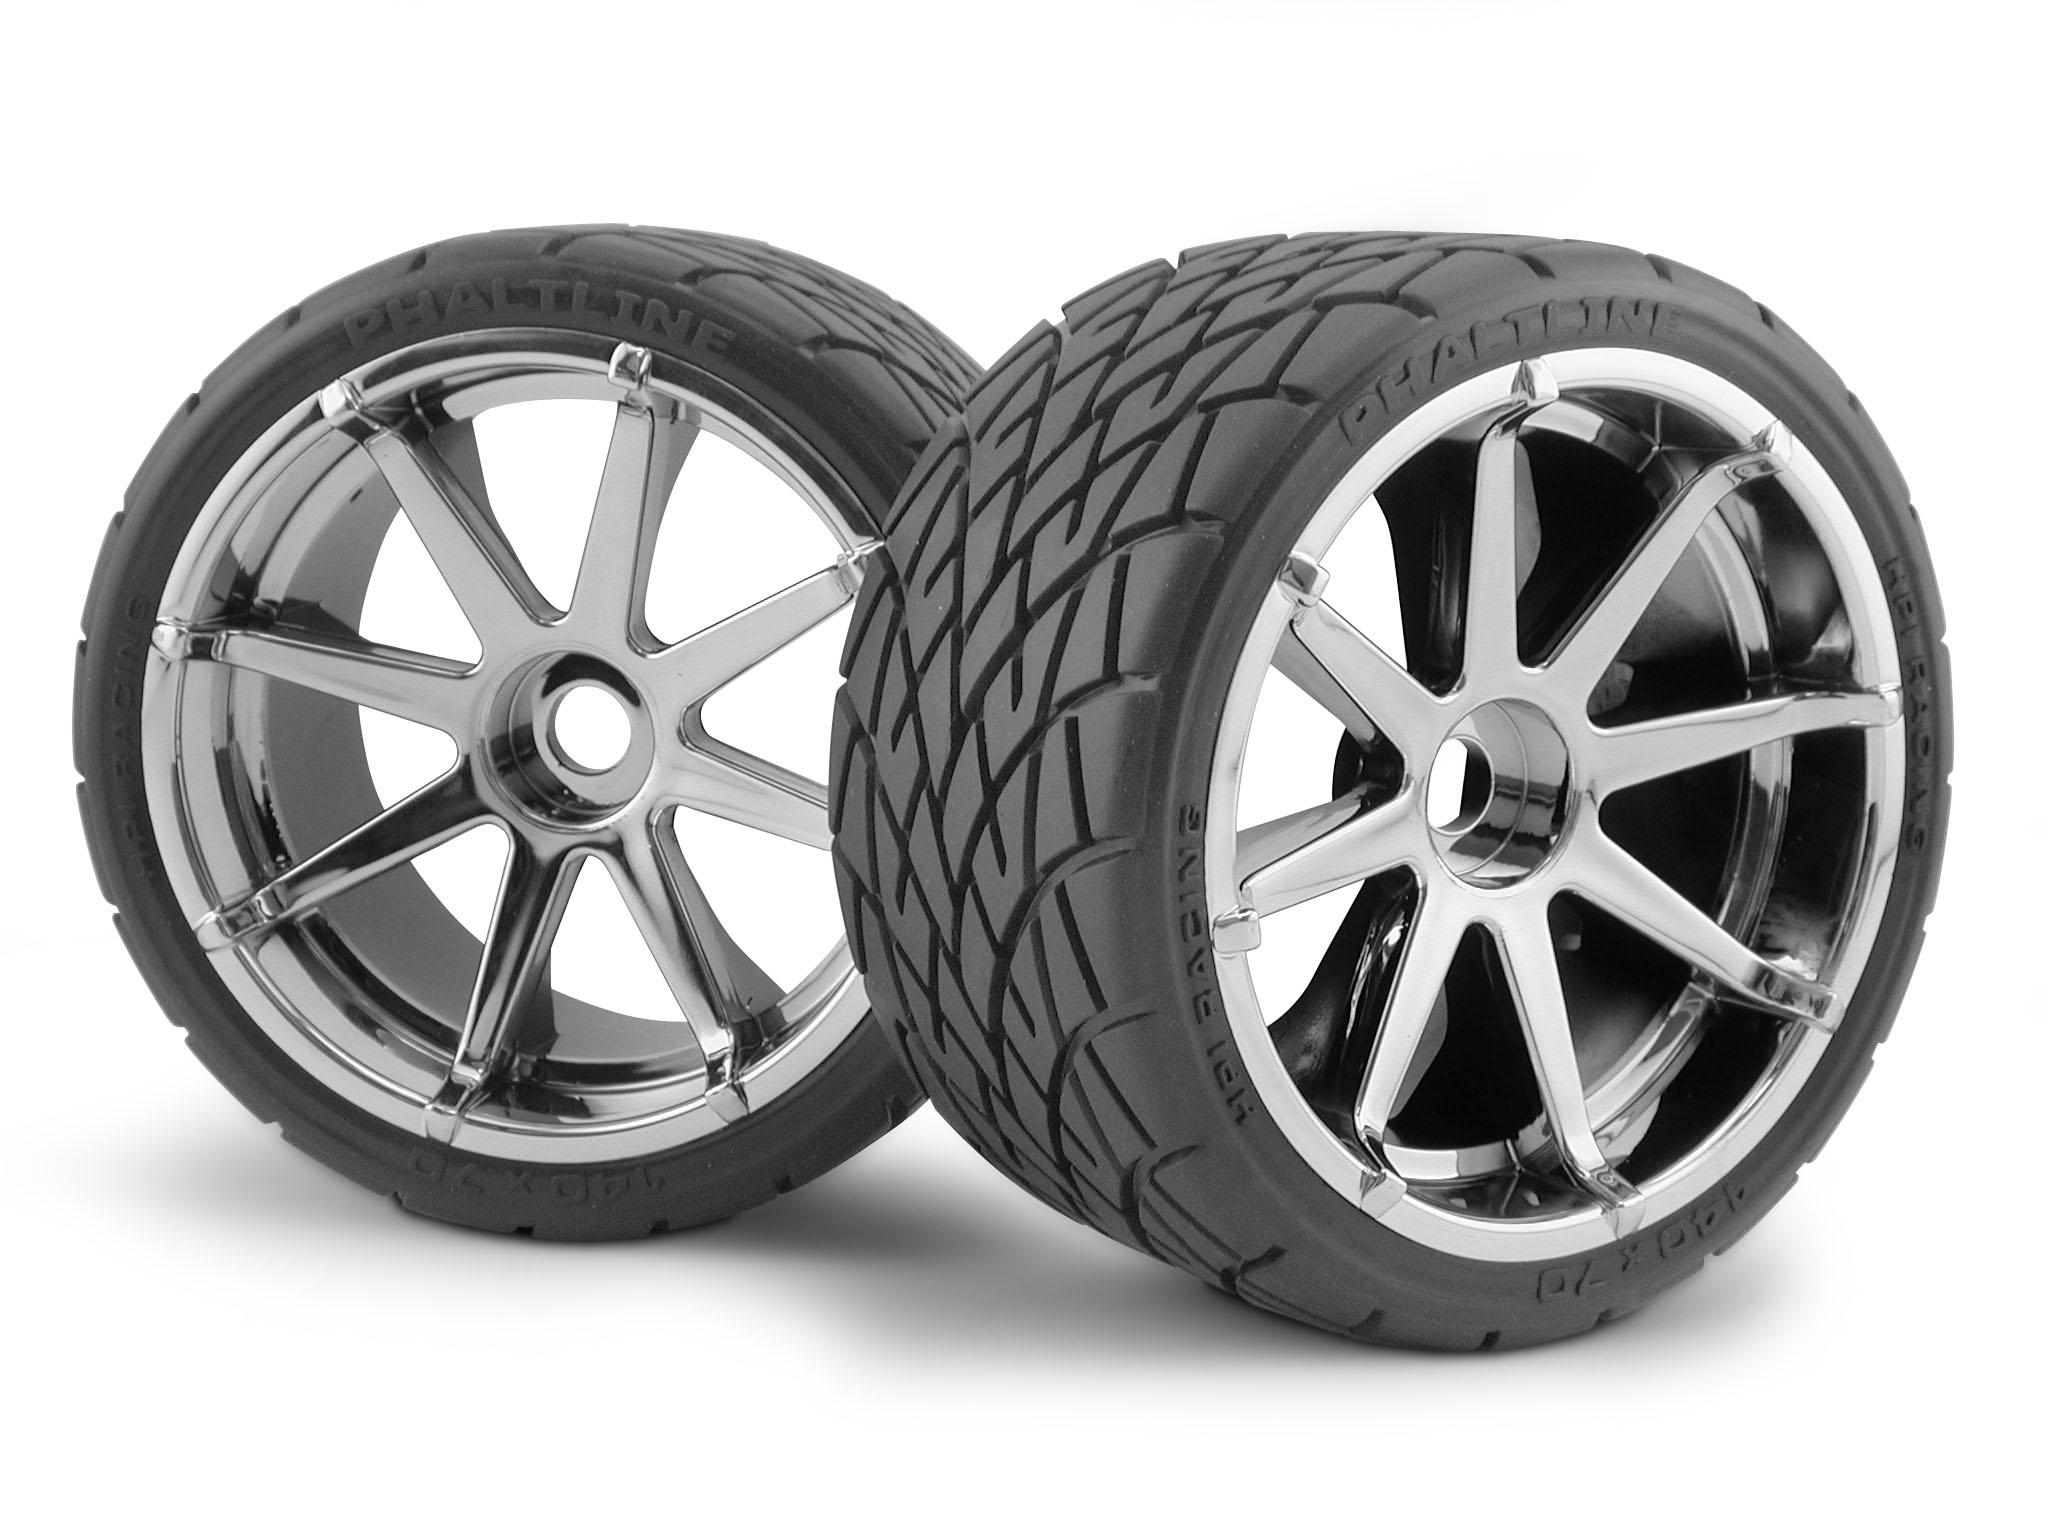 San Diego Wheels and Tires Available at UsaRim Located off Miramar Rd.